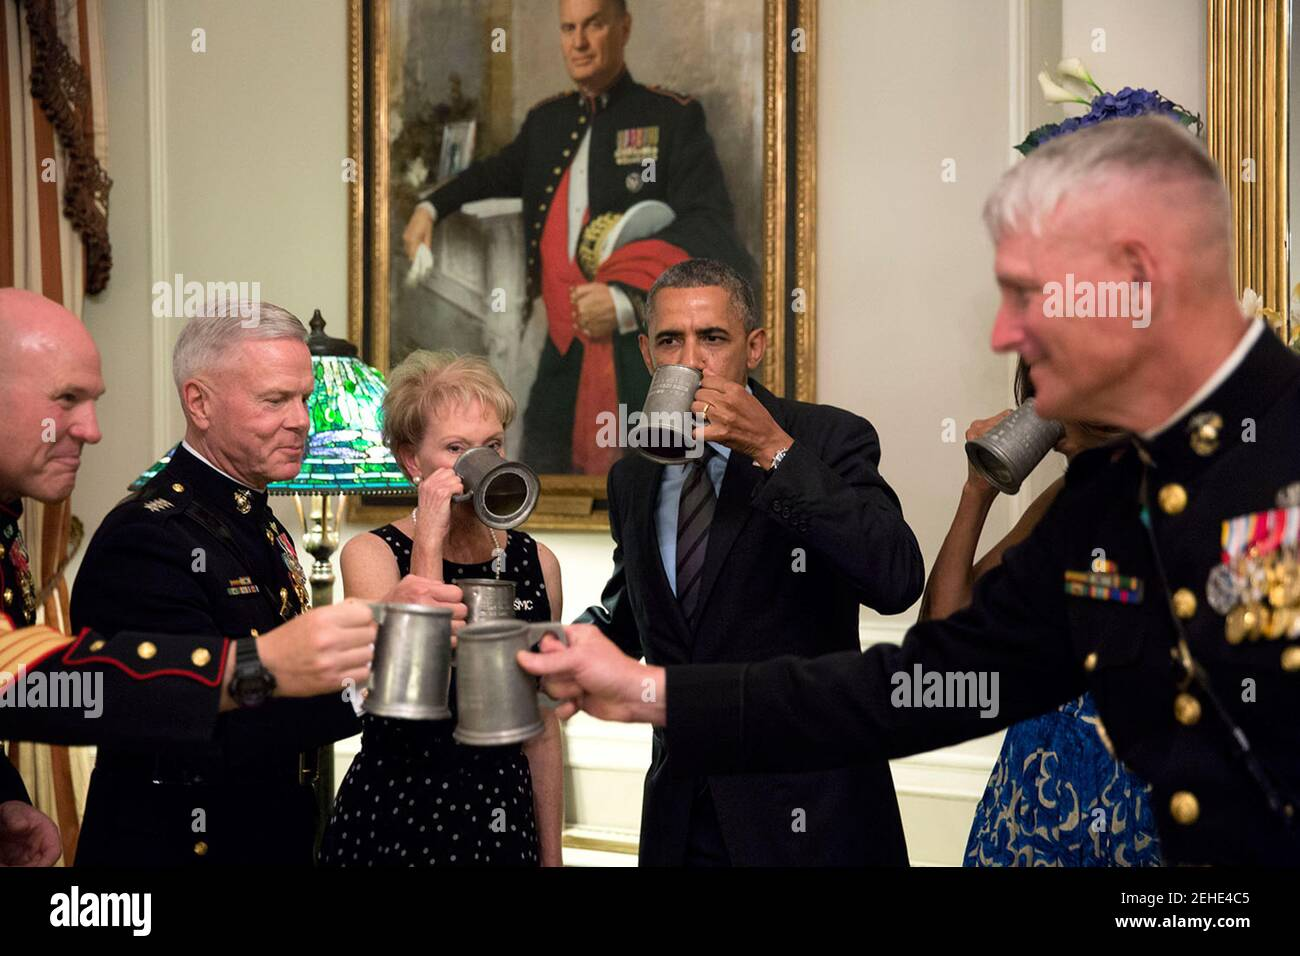 President Barack Obama and First Lady Michelle Obama join Gen. James Amos, Commandant of the Marine Corps, second left, and Mrs. Bonnie Amos for a celebratory toast at the Home of the Commandants at the Marine Barracks Washington in Washington, D.C, June 27, 2014. Stock Photo